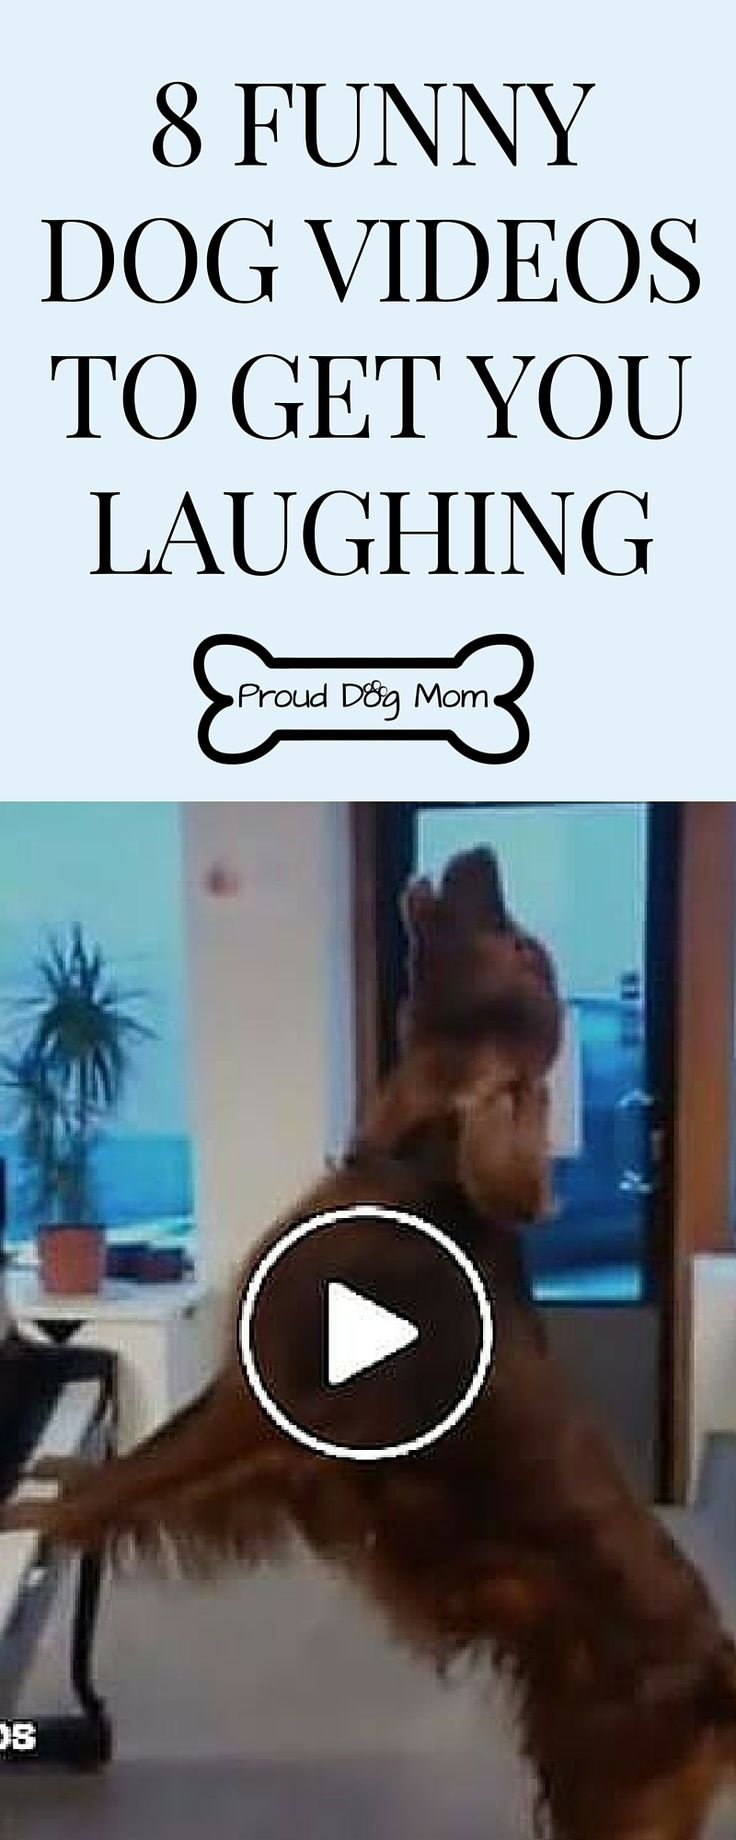 Watch These 8 Funny Dog Videos For a Good Laugh   Cute Dogs  